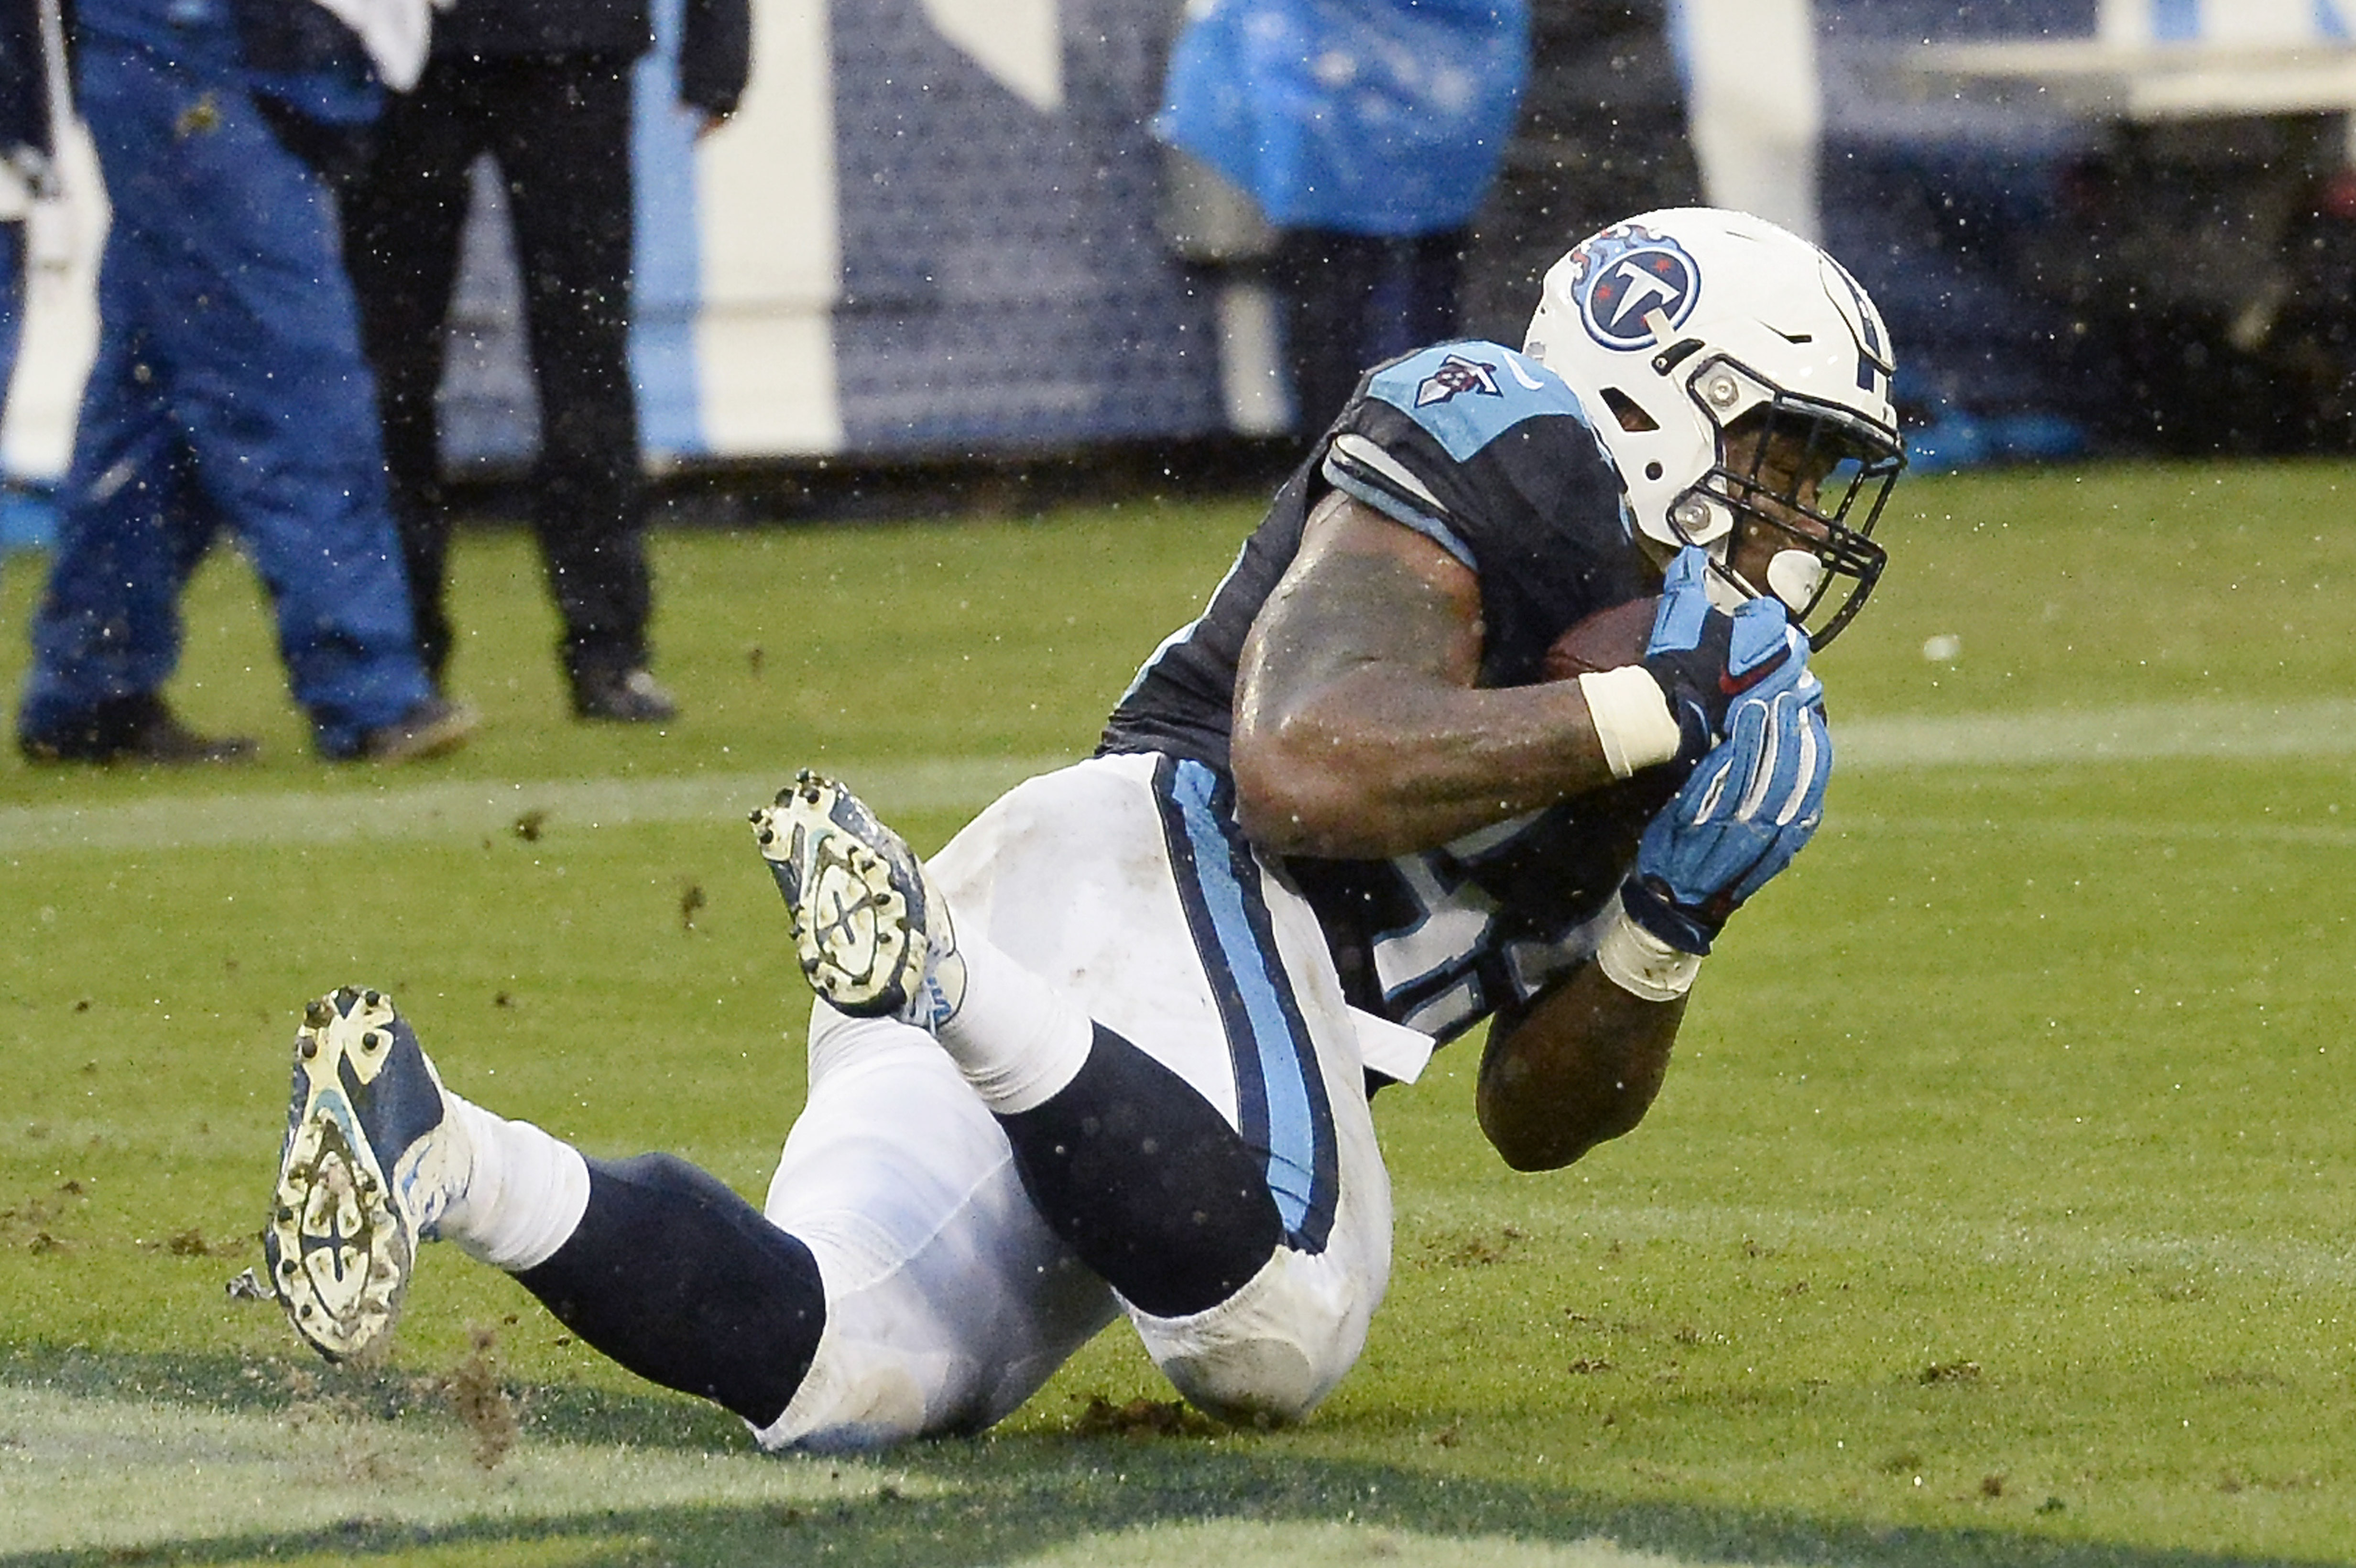 FILE - In this Nov. 29, 2015 file photo, Tennessee Titans fullback Jalston Fowler catches a 1-yard touchdown pass against the Oakland Raiders in the second half of an NFL football game in Nashville, Tenn.  Tennessee does a decent enough job of staying on